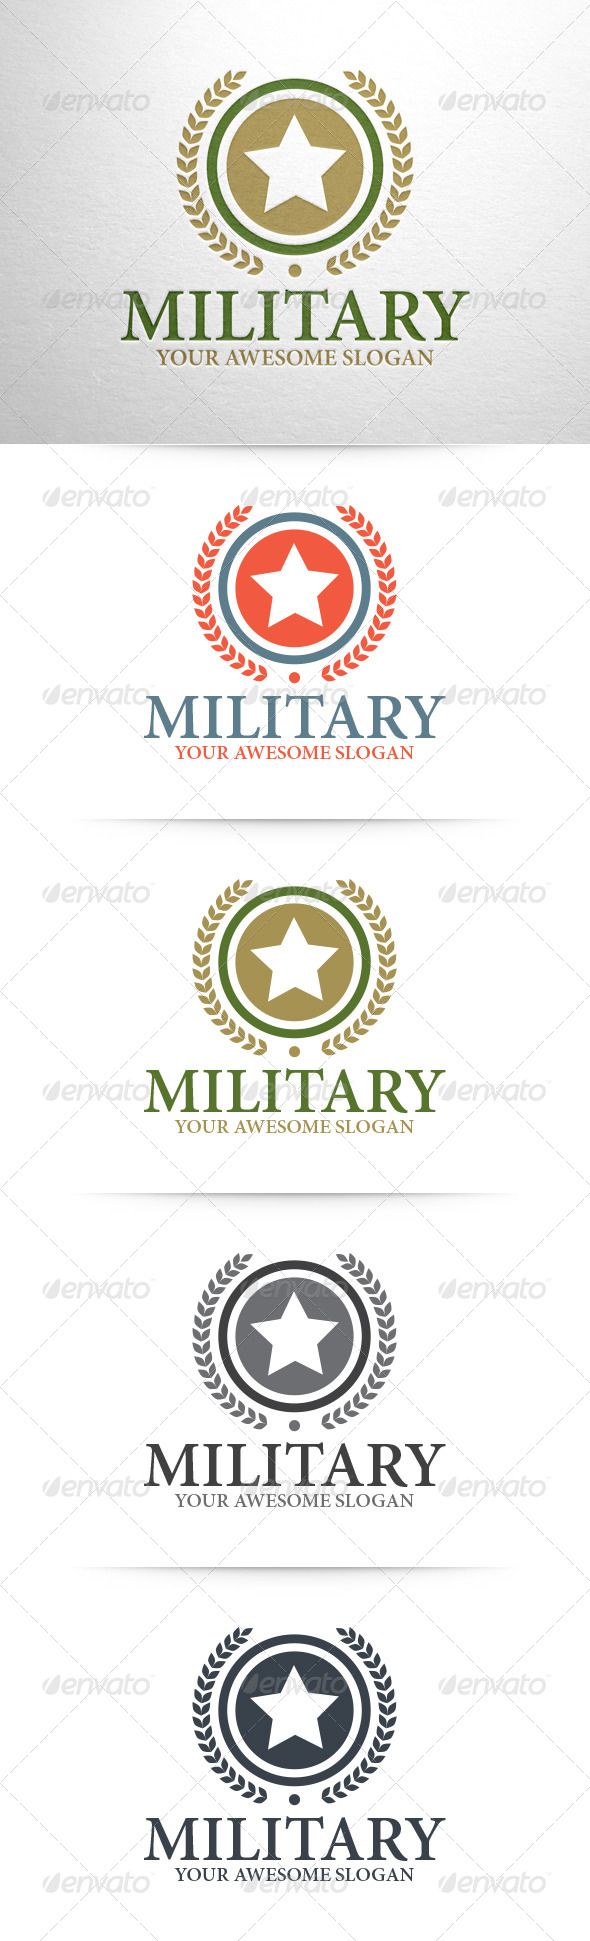 GraphicRiver Military Logo Template 6321892